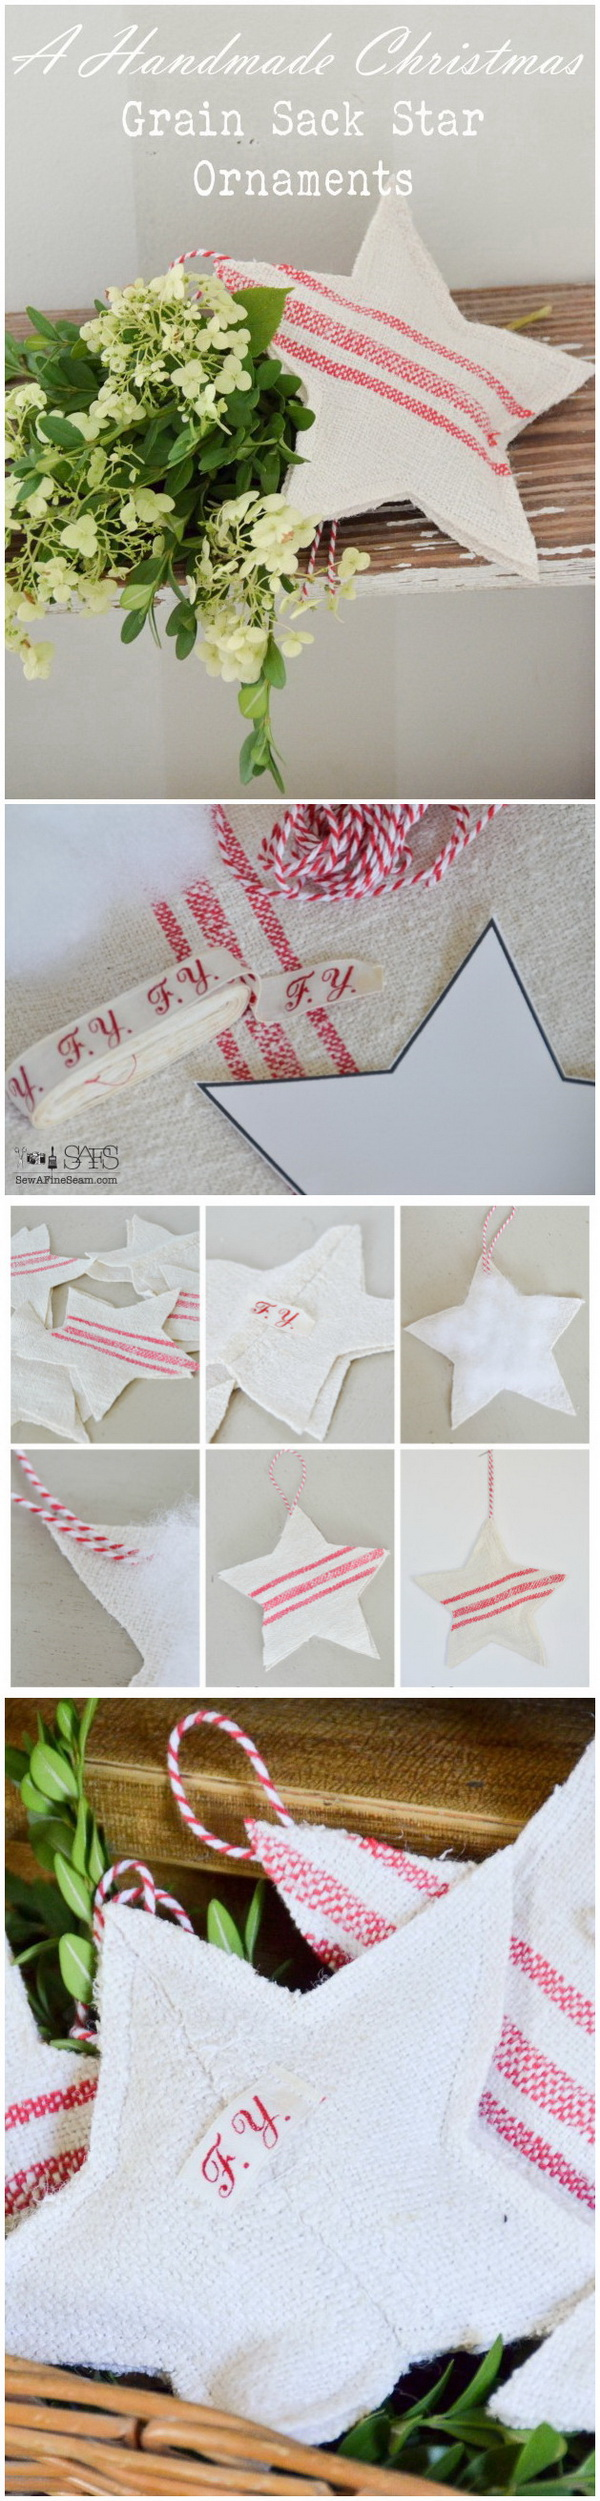 Grain Sack Star Christmas Ornaments. Add some rustic charm to your farmhouse style Christmas tree with these easy and simple grain sack star ornaments!